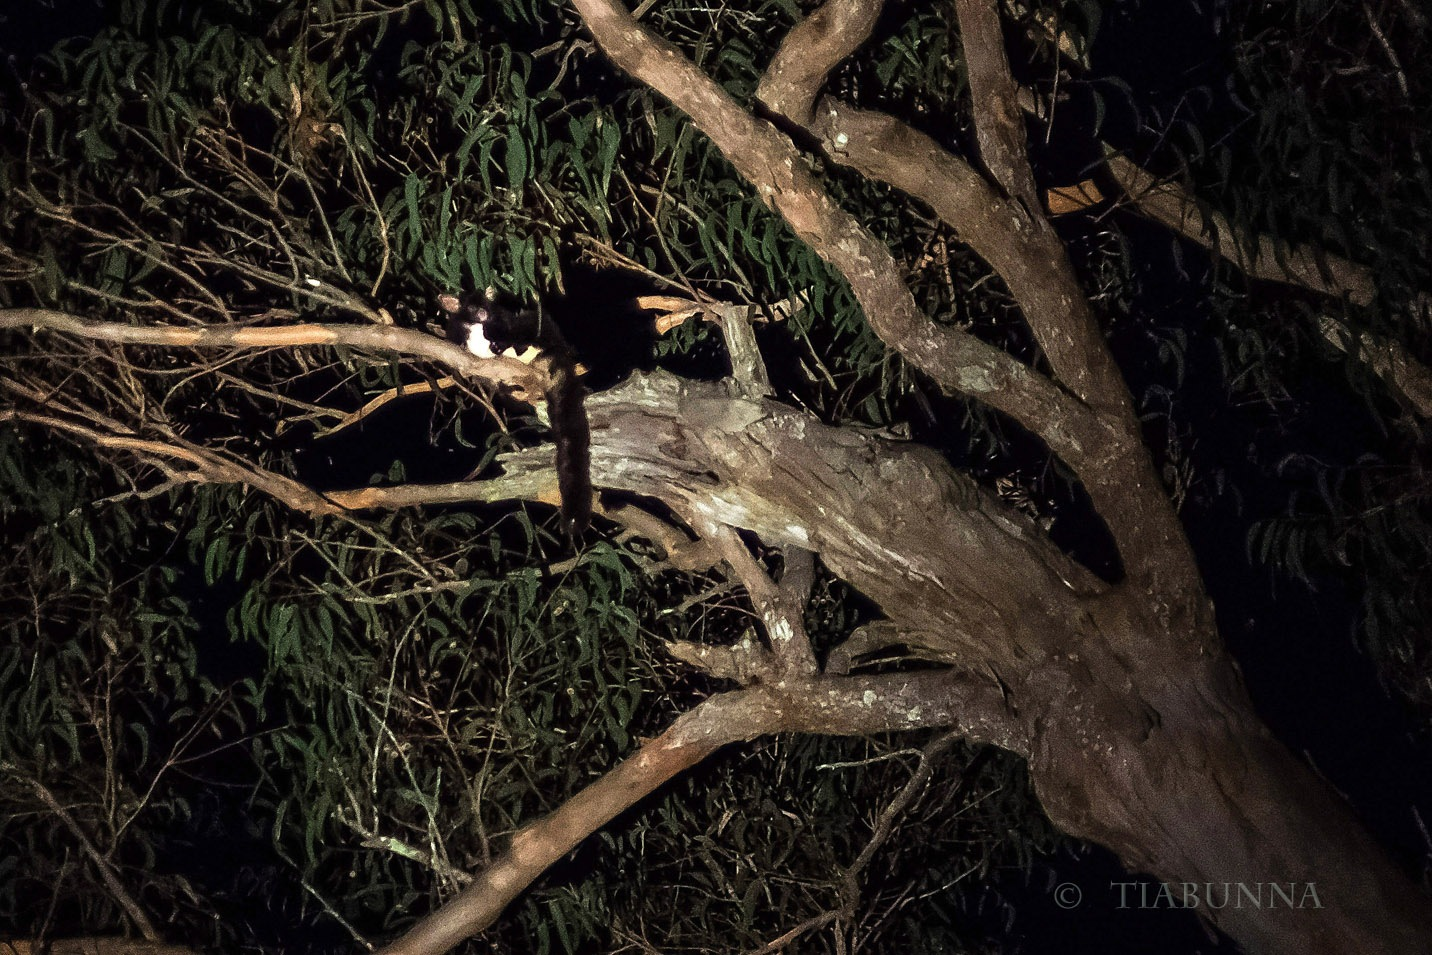 The Greater glider by George Cook